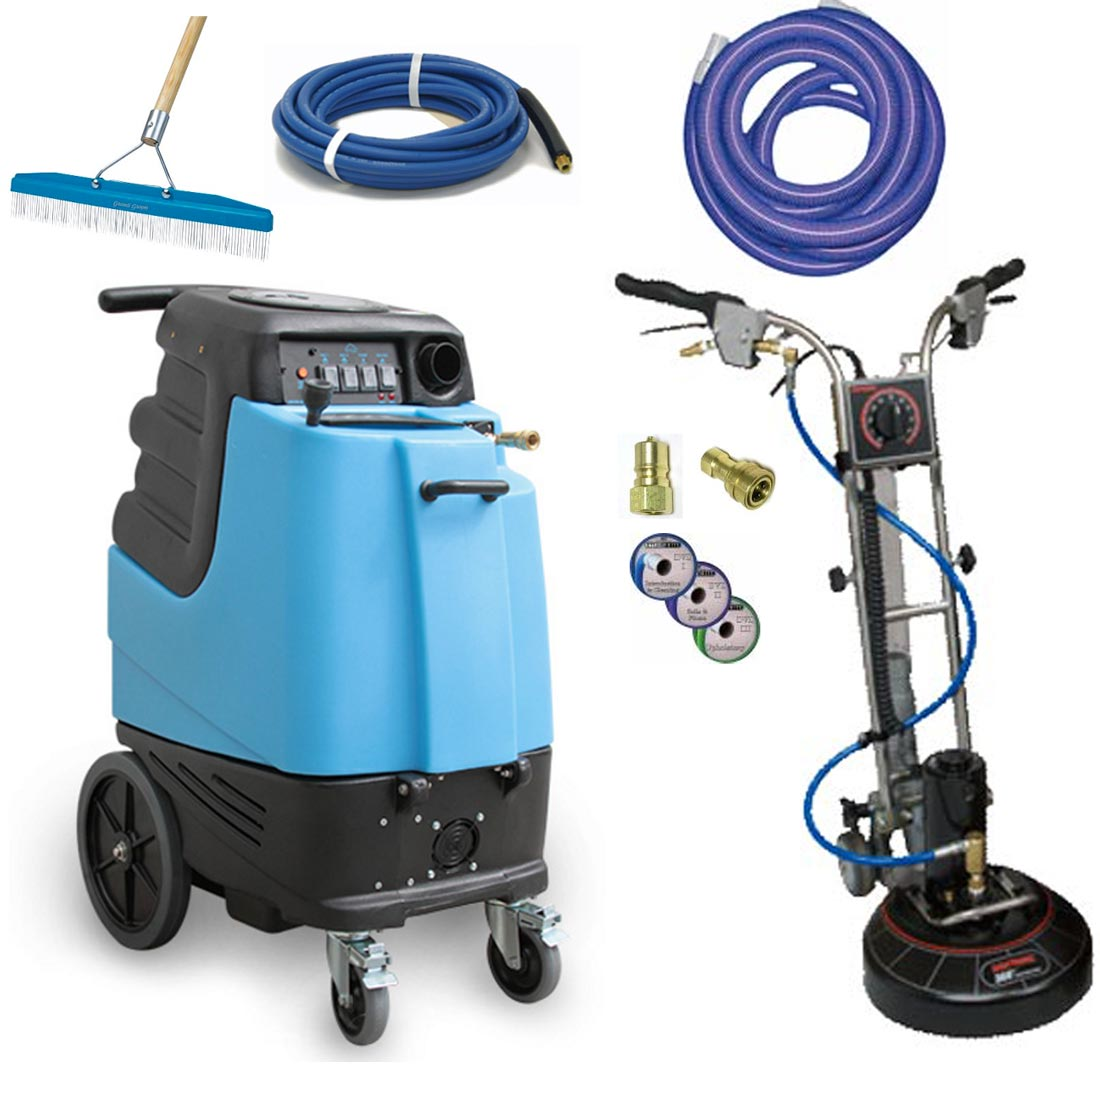 Rotovac360i 1003DX Mytee Speedster 12gal 500psi HEATED Dual 3 Stage Vacs Carpet Cleaning Extractor Package